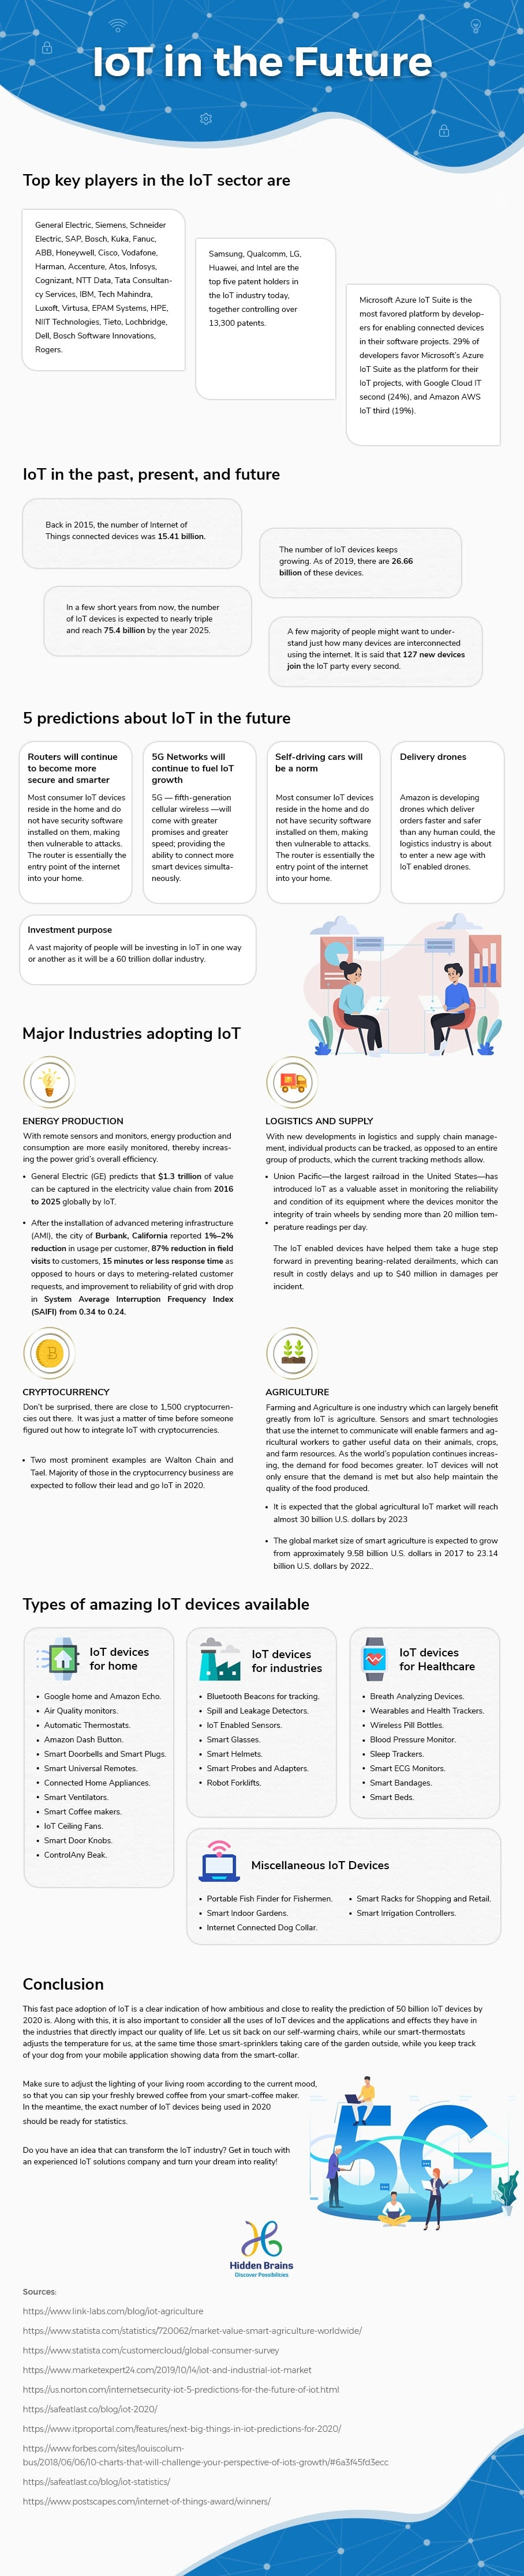 IoT in 2020: The Market to See a Gigantic Growth in Future #infographic